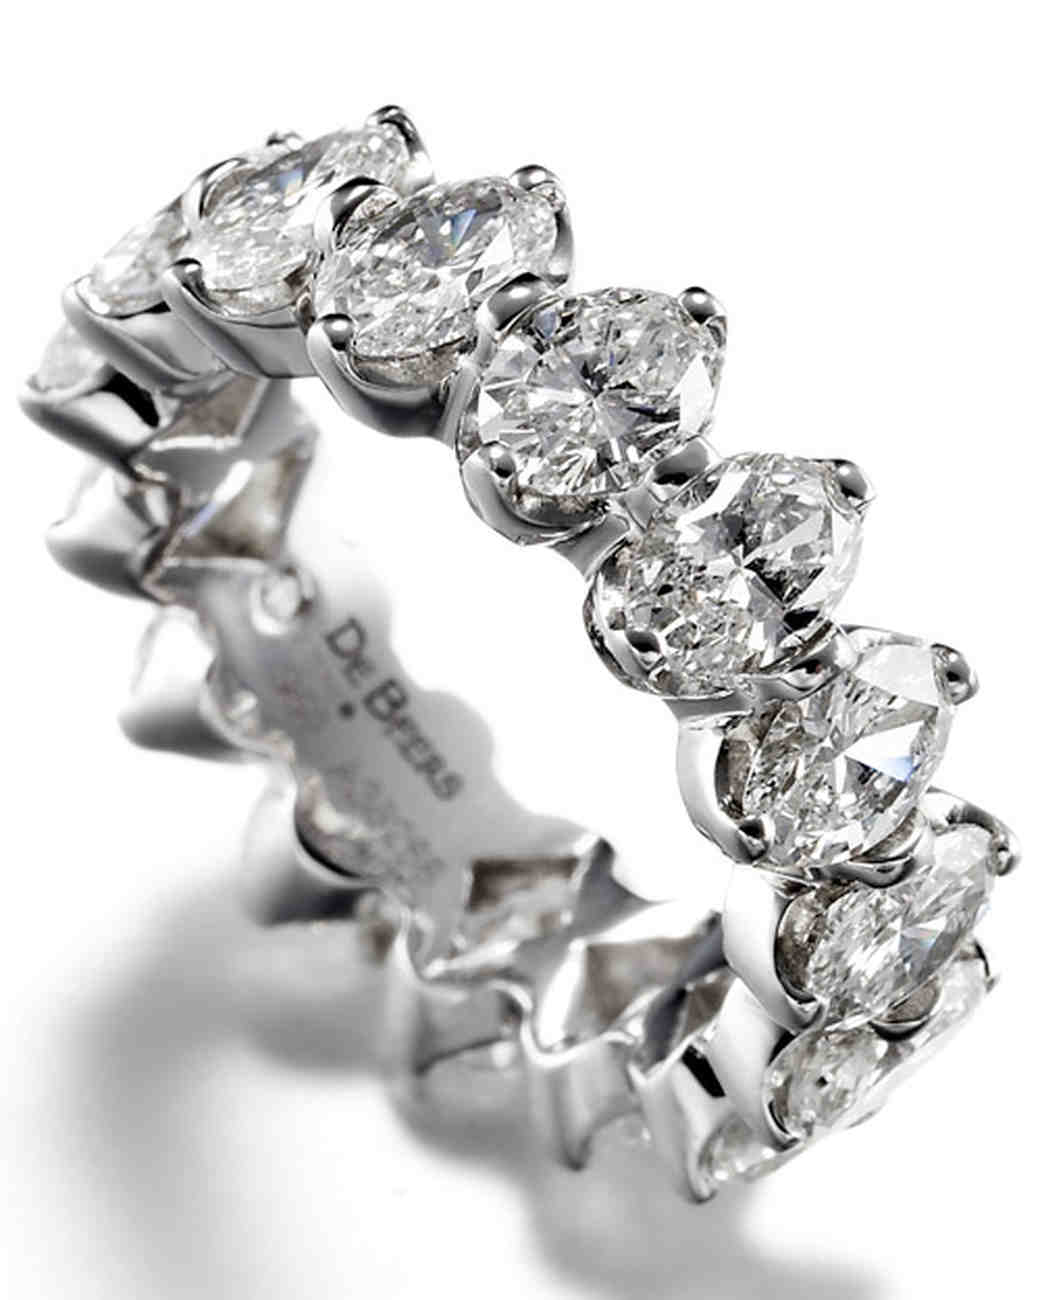 debeers_allegria_full_oval_cut_j1eq16z00p.jpg